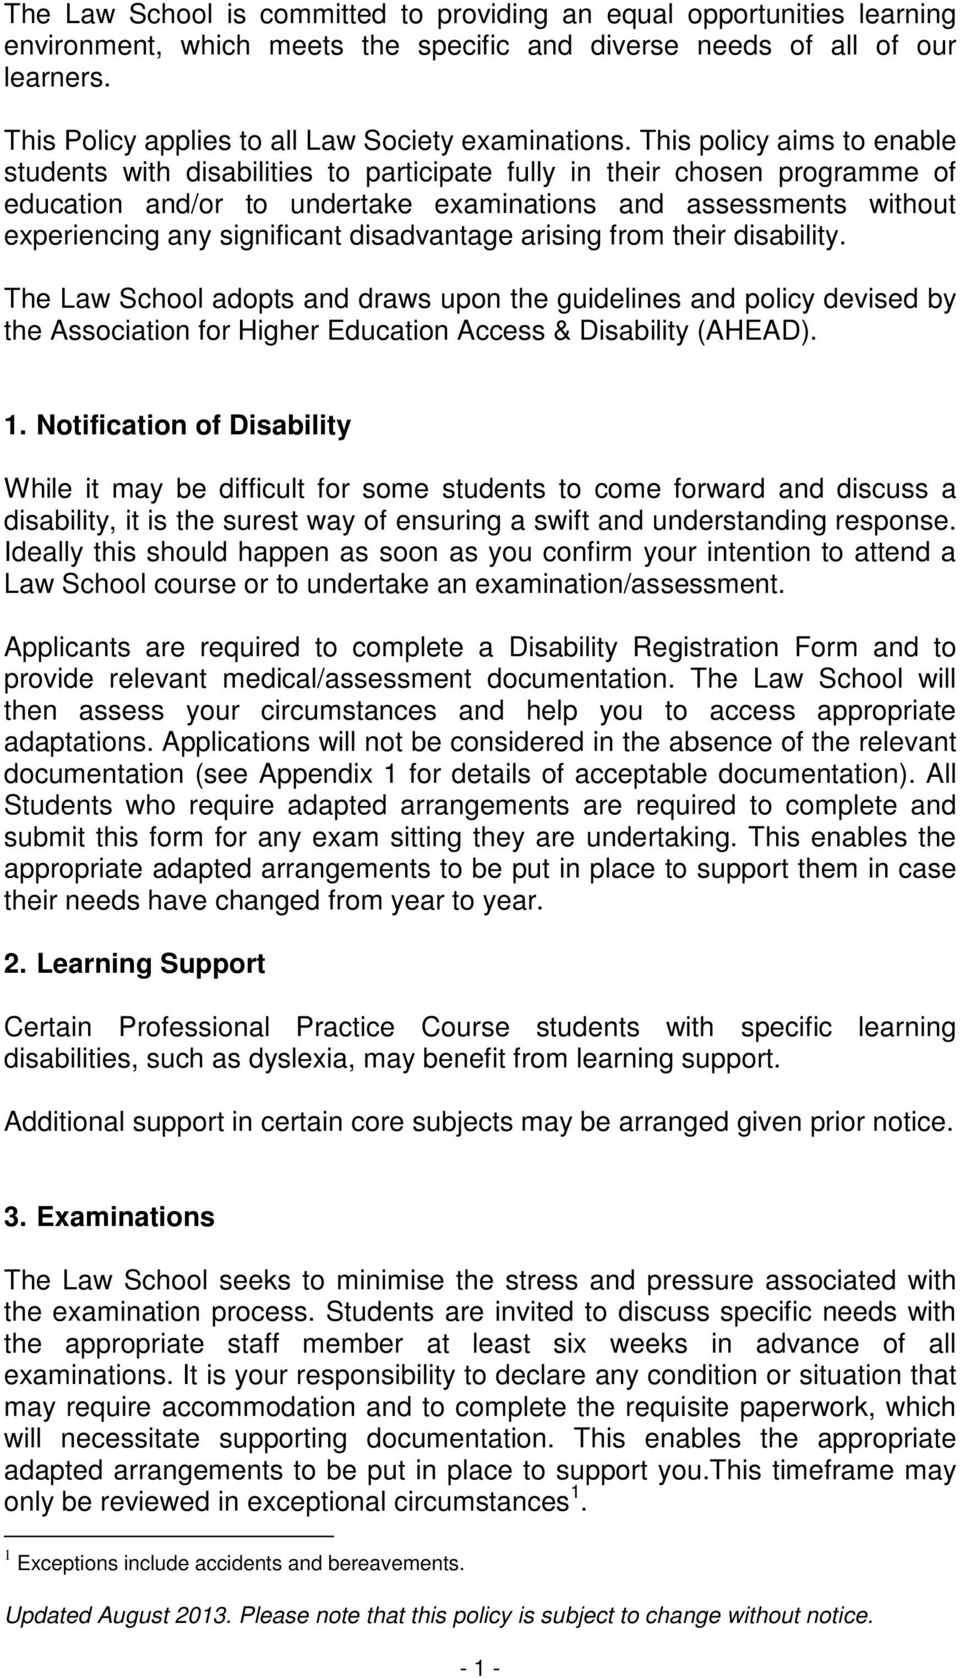 This policy aims to enable students with disabilities to participate fully in their chosen programme of education and/or to undertake examinations and assessments without experiencing any significant